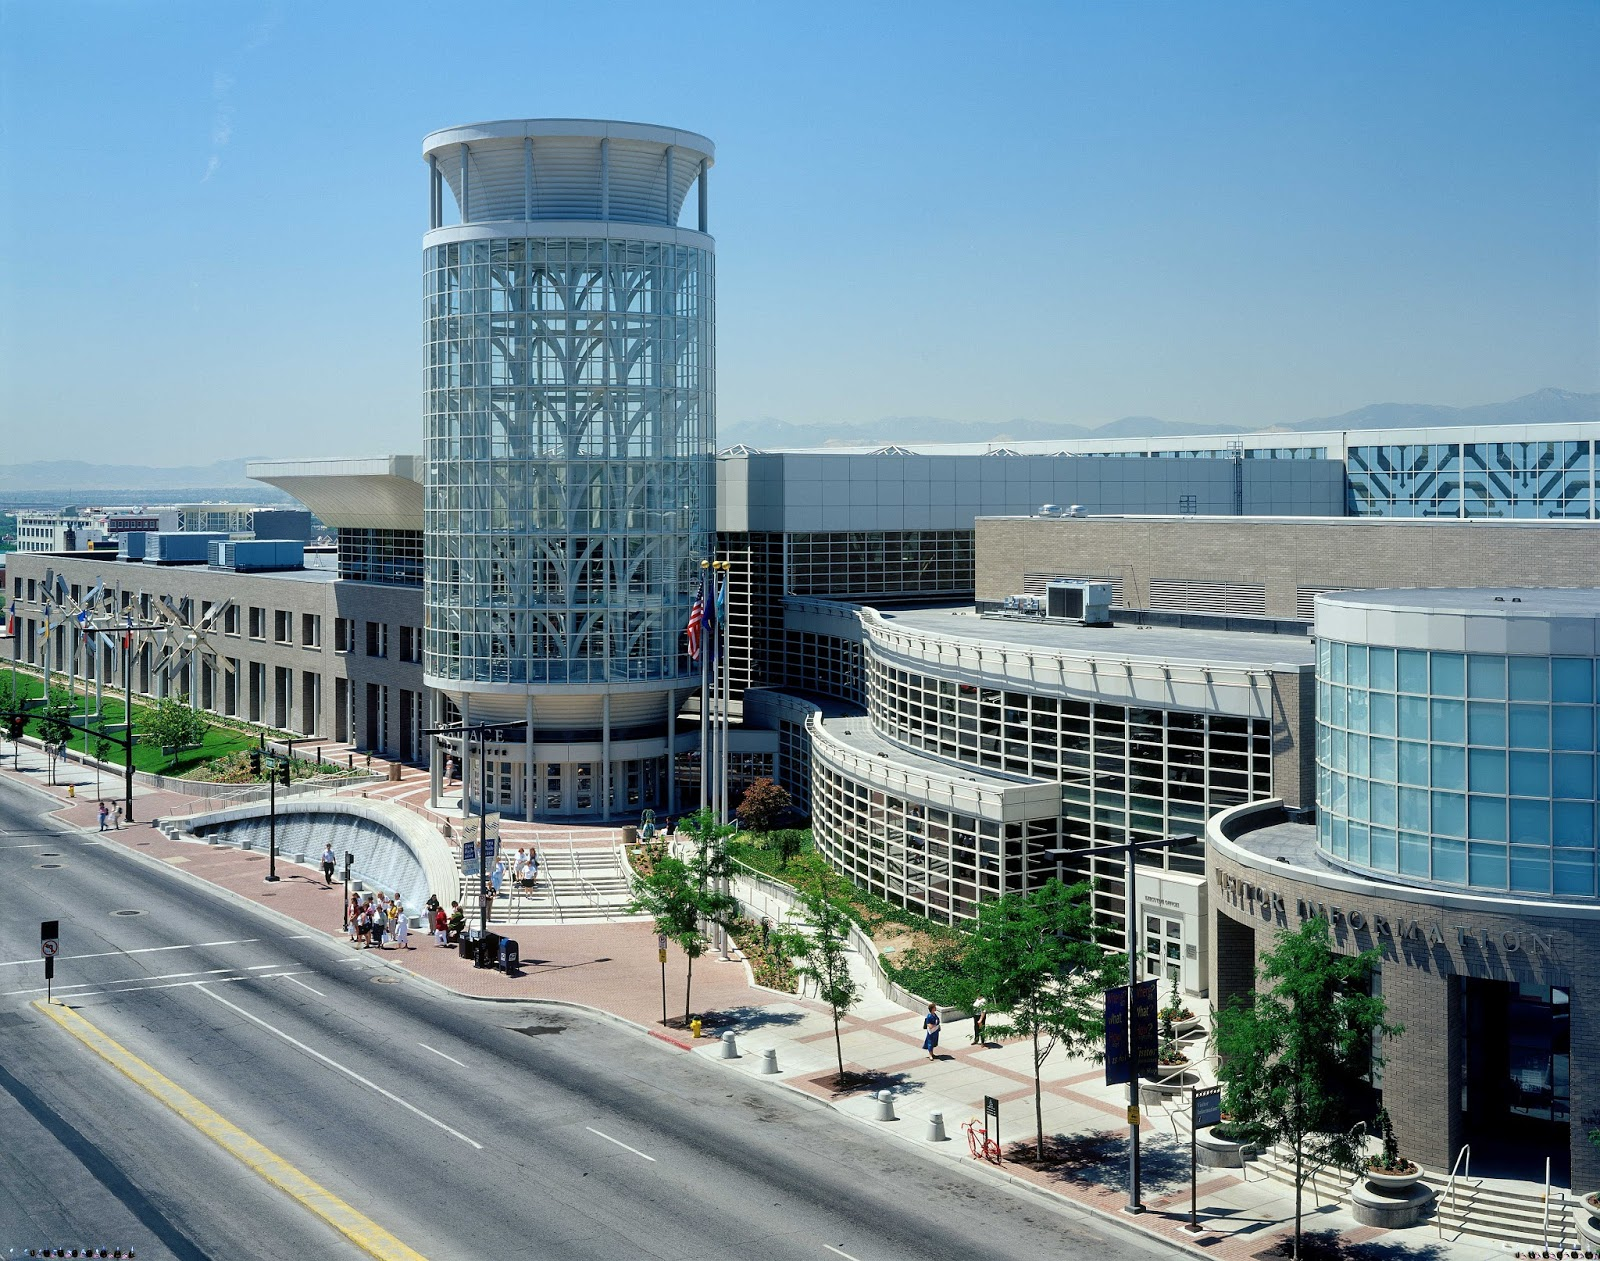 LDS Conference Center (Salt Lake City) - 2019 All You Need ...